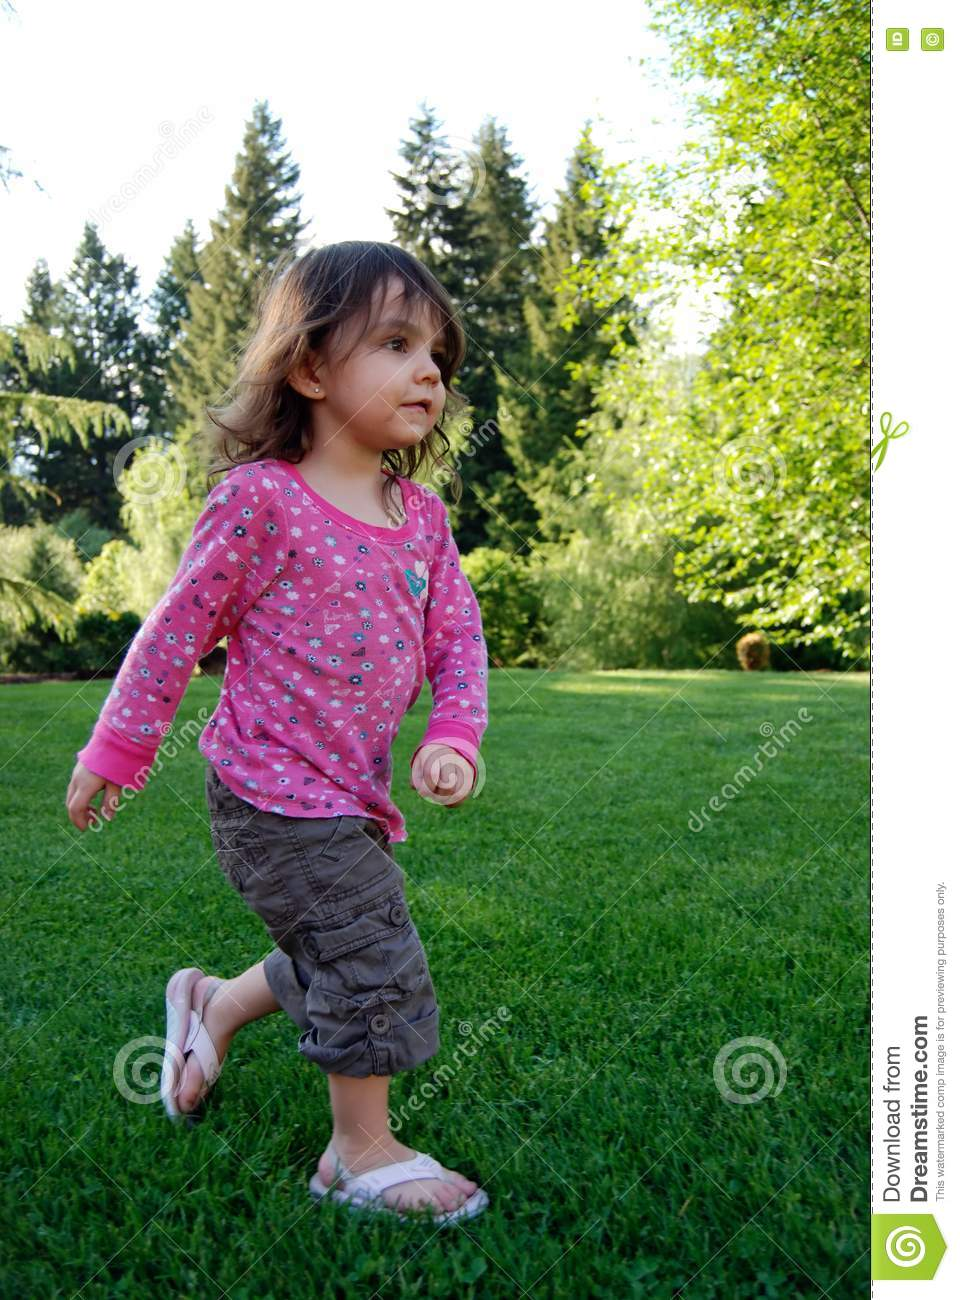 Girl Playing Picture. Image  5354897 78344dcea8a